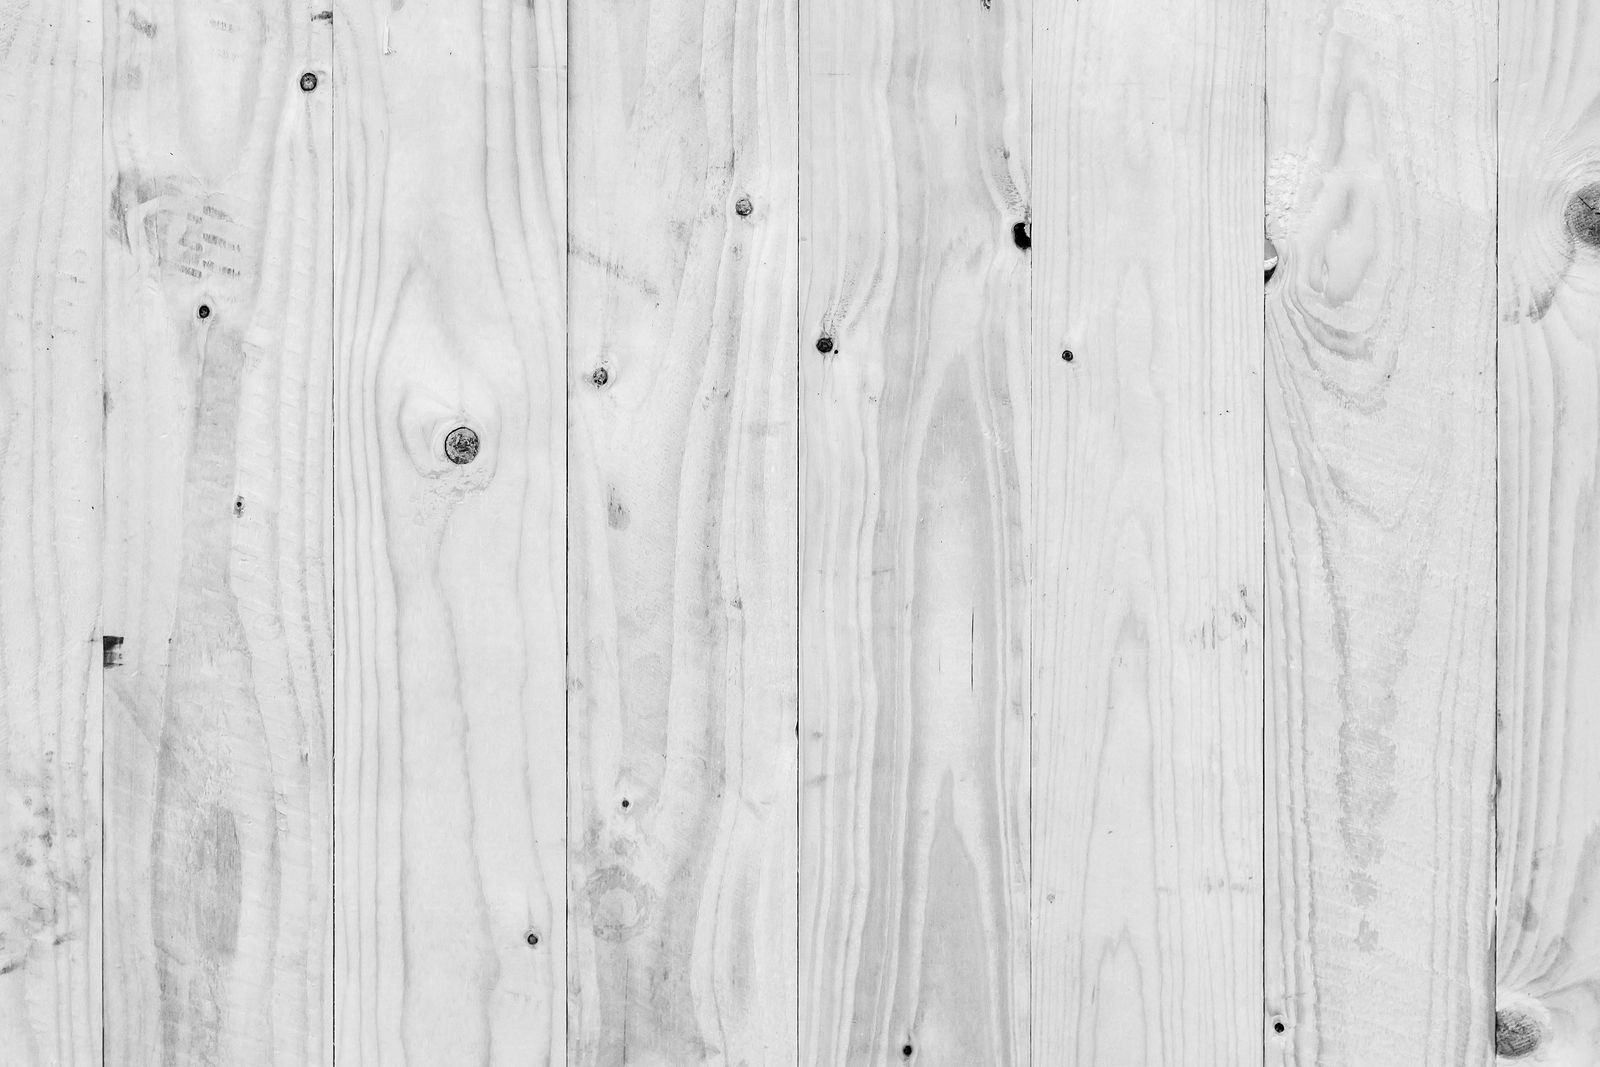 grunge white wood and rustic wood background texture   For ...